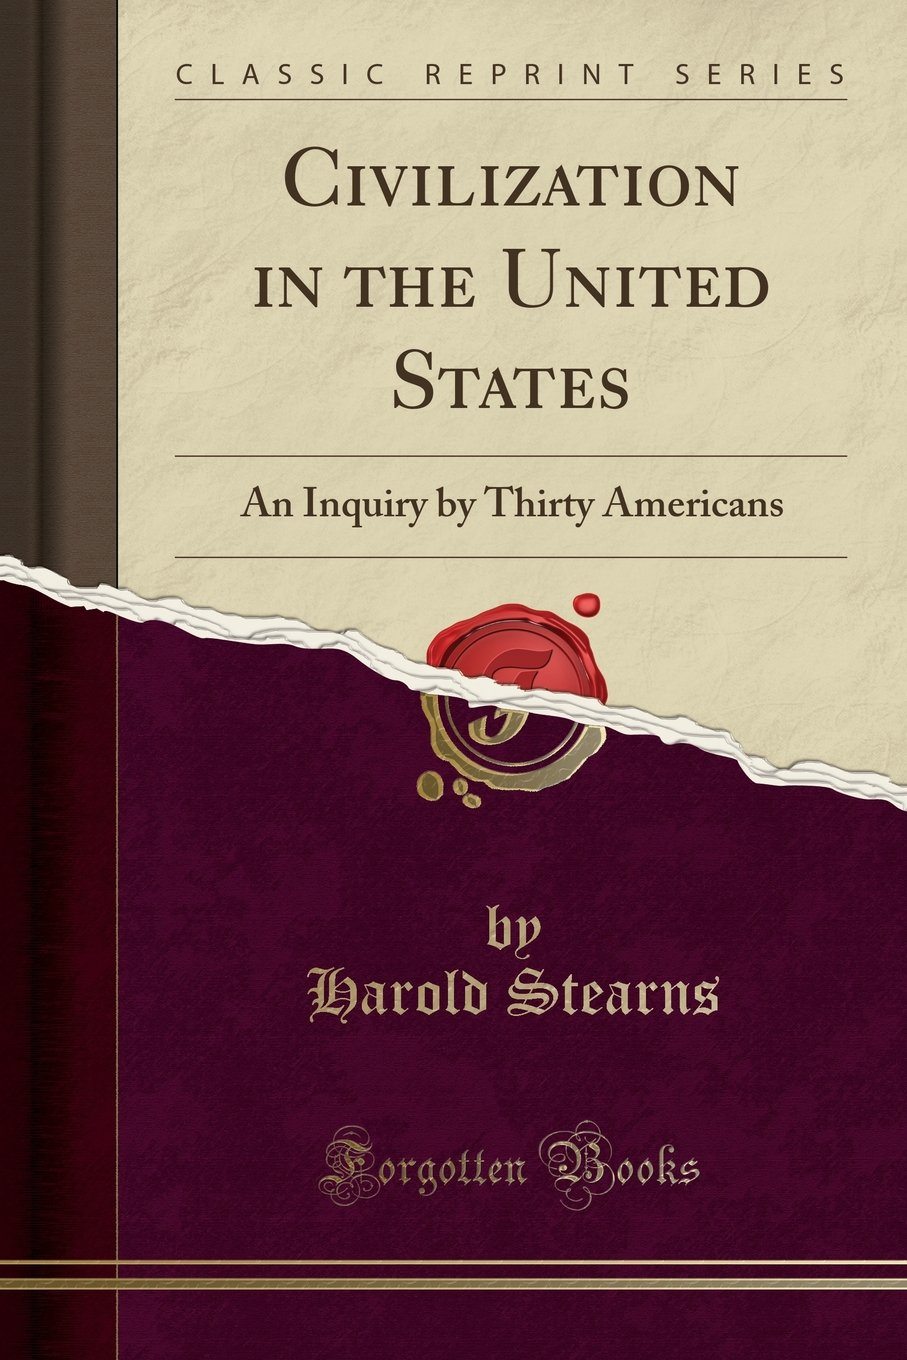 Civilization in the United States: An Inquiry by Thirty Americans (Classic  Reprint): Harold Stearns: 9781330987988: Amazon.com: Books